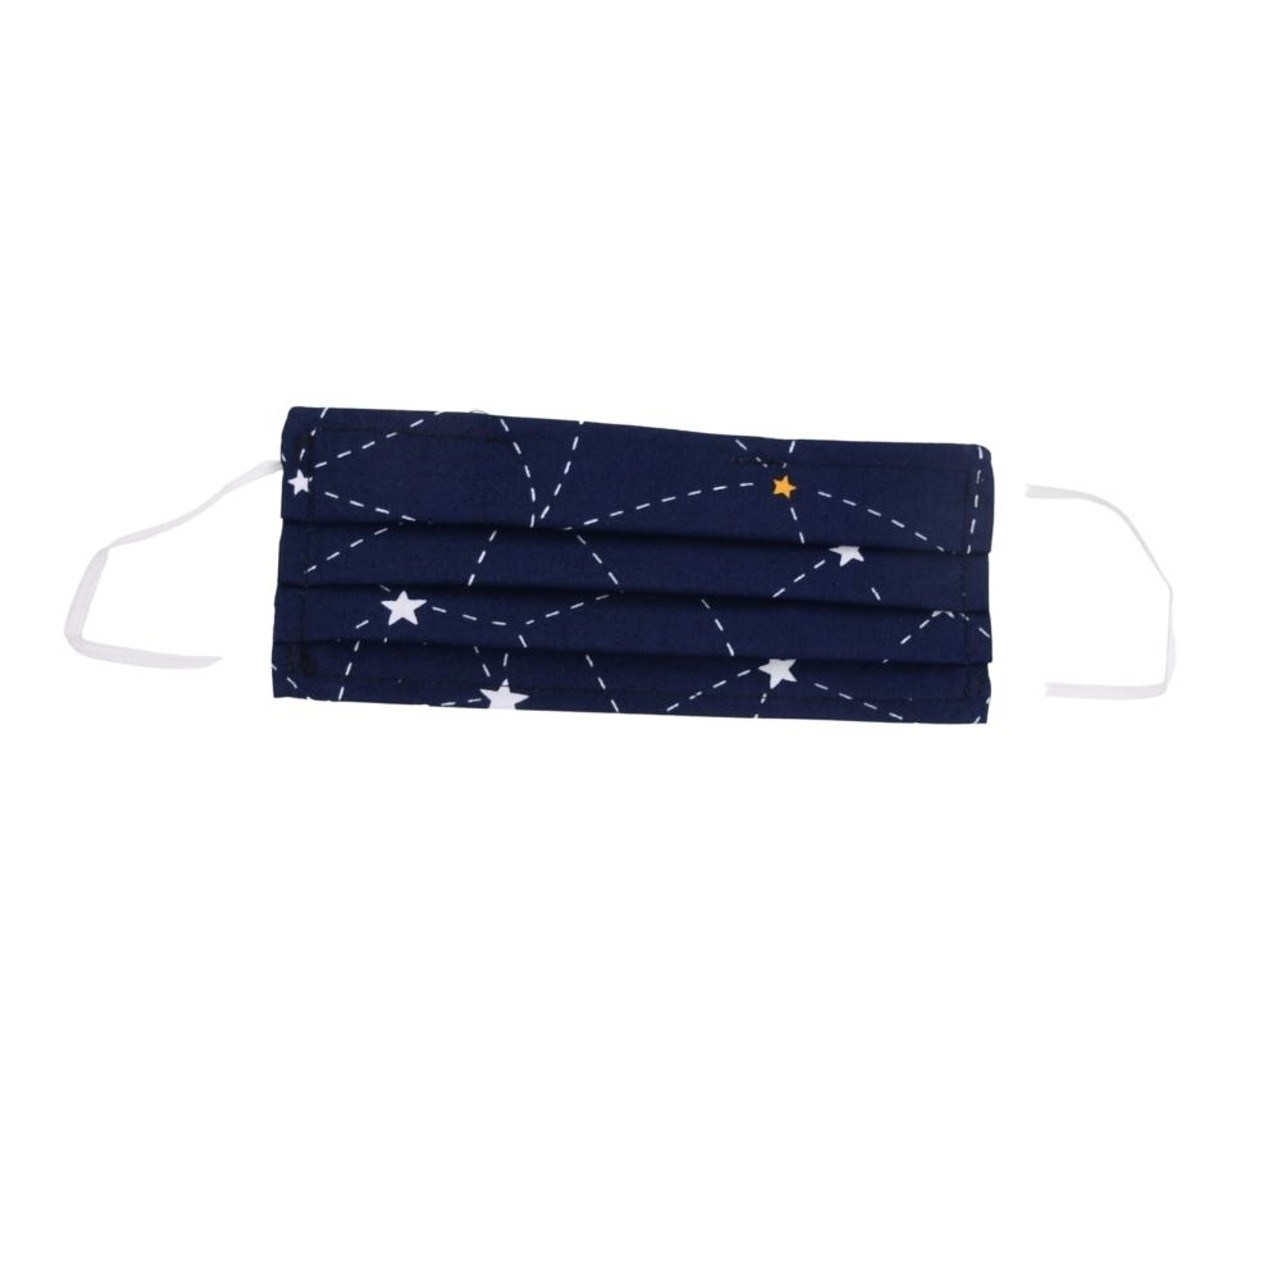 Cotton Face Mask with Filter Pocket - Adults, Starry Sky